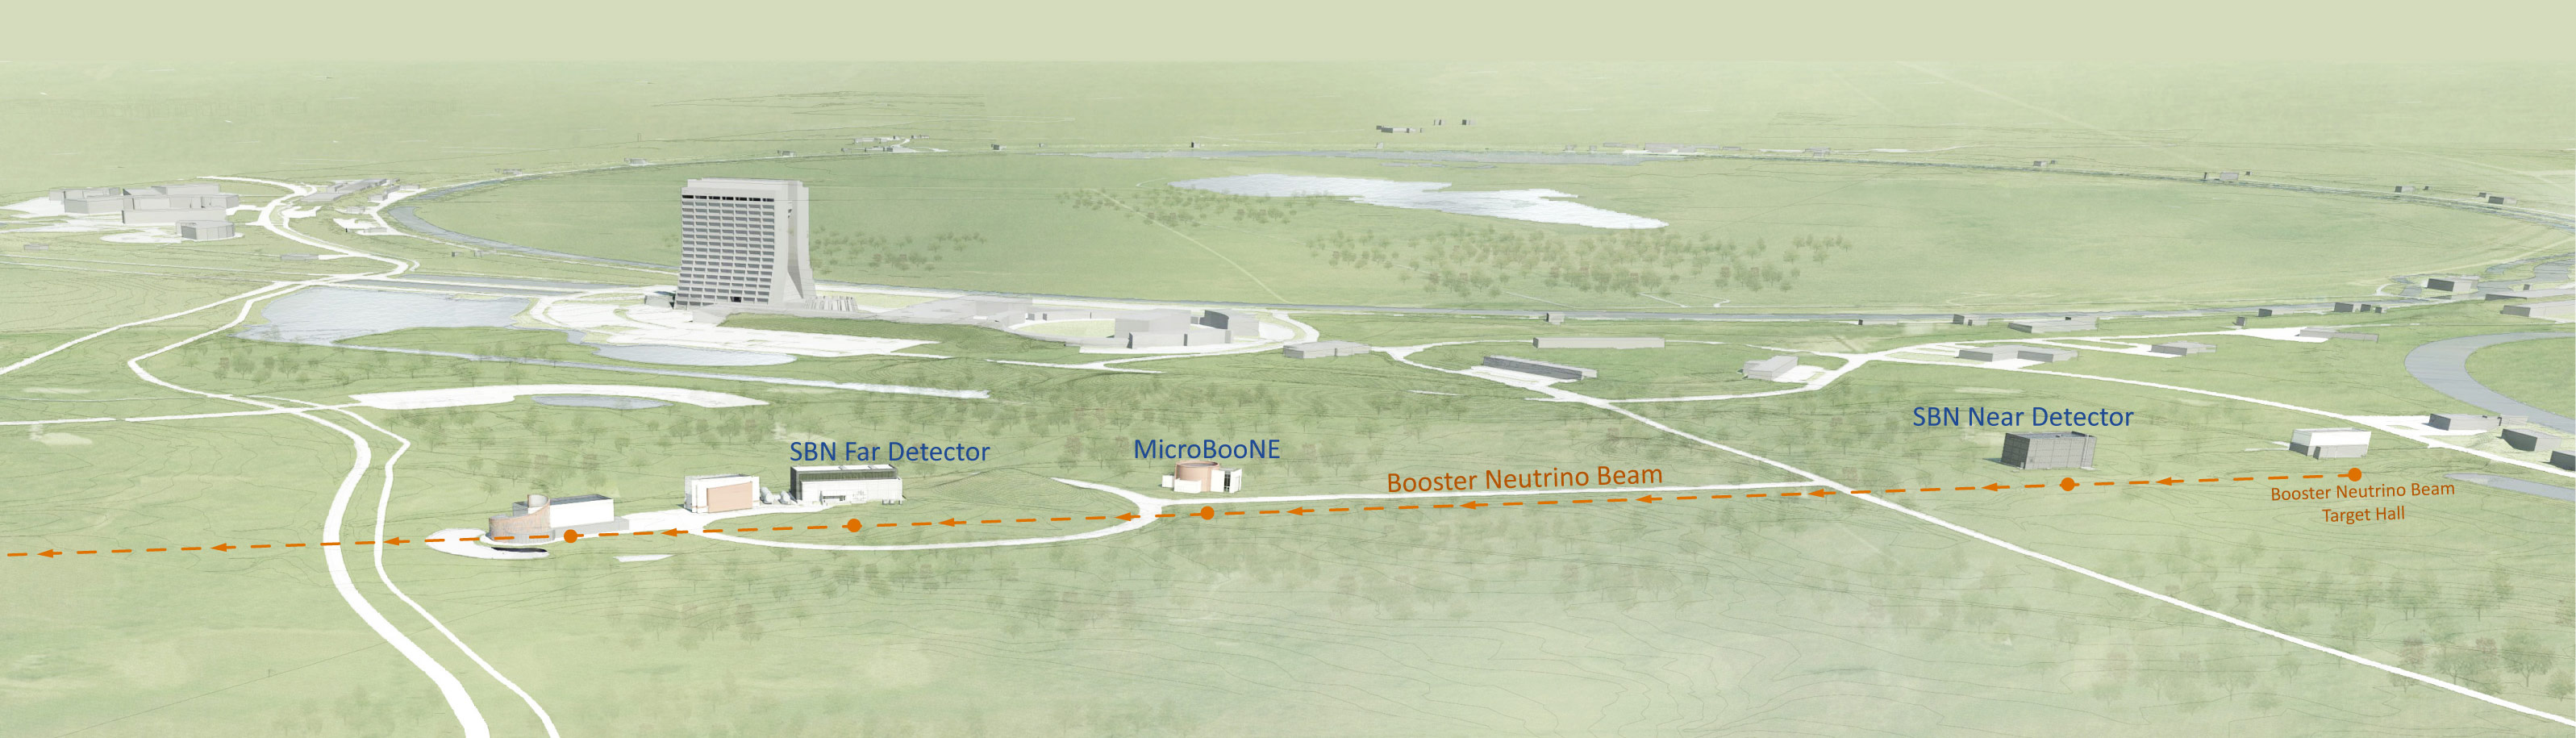 Fermilab Neutrino Campus Map